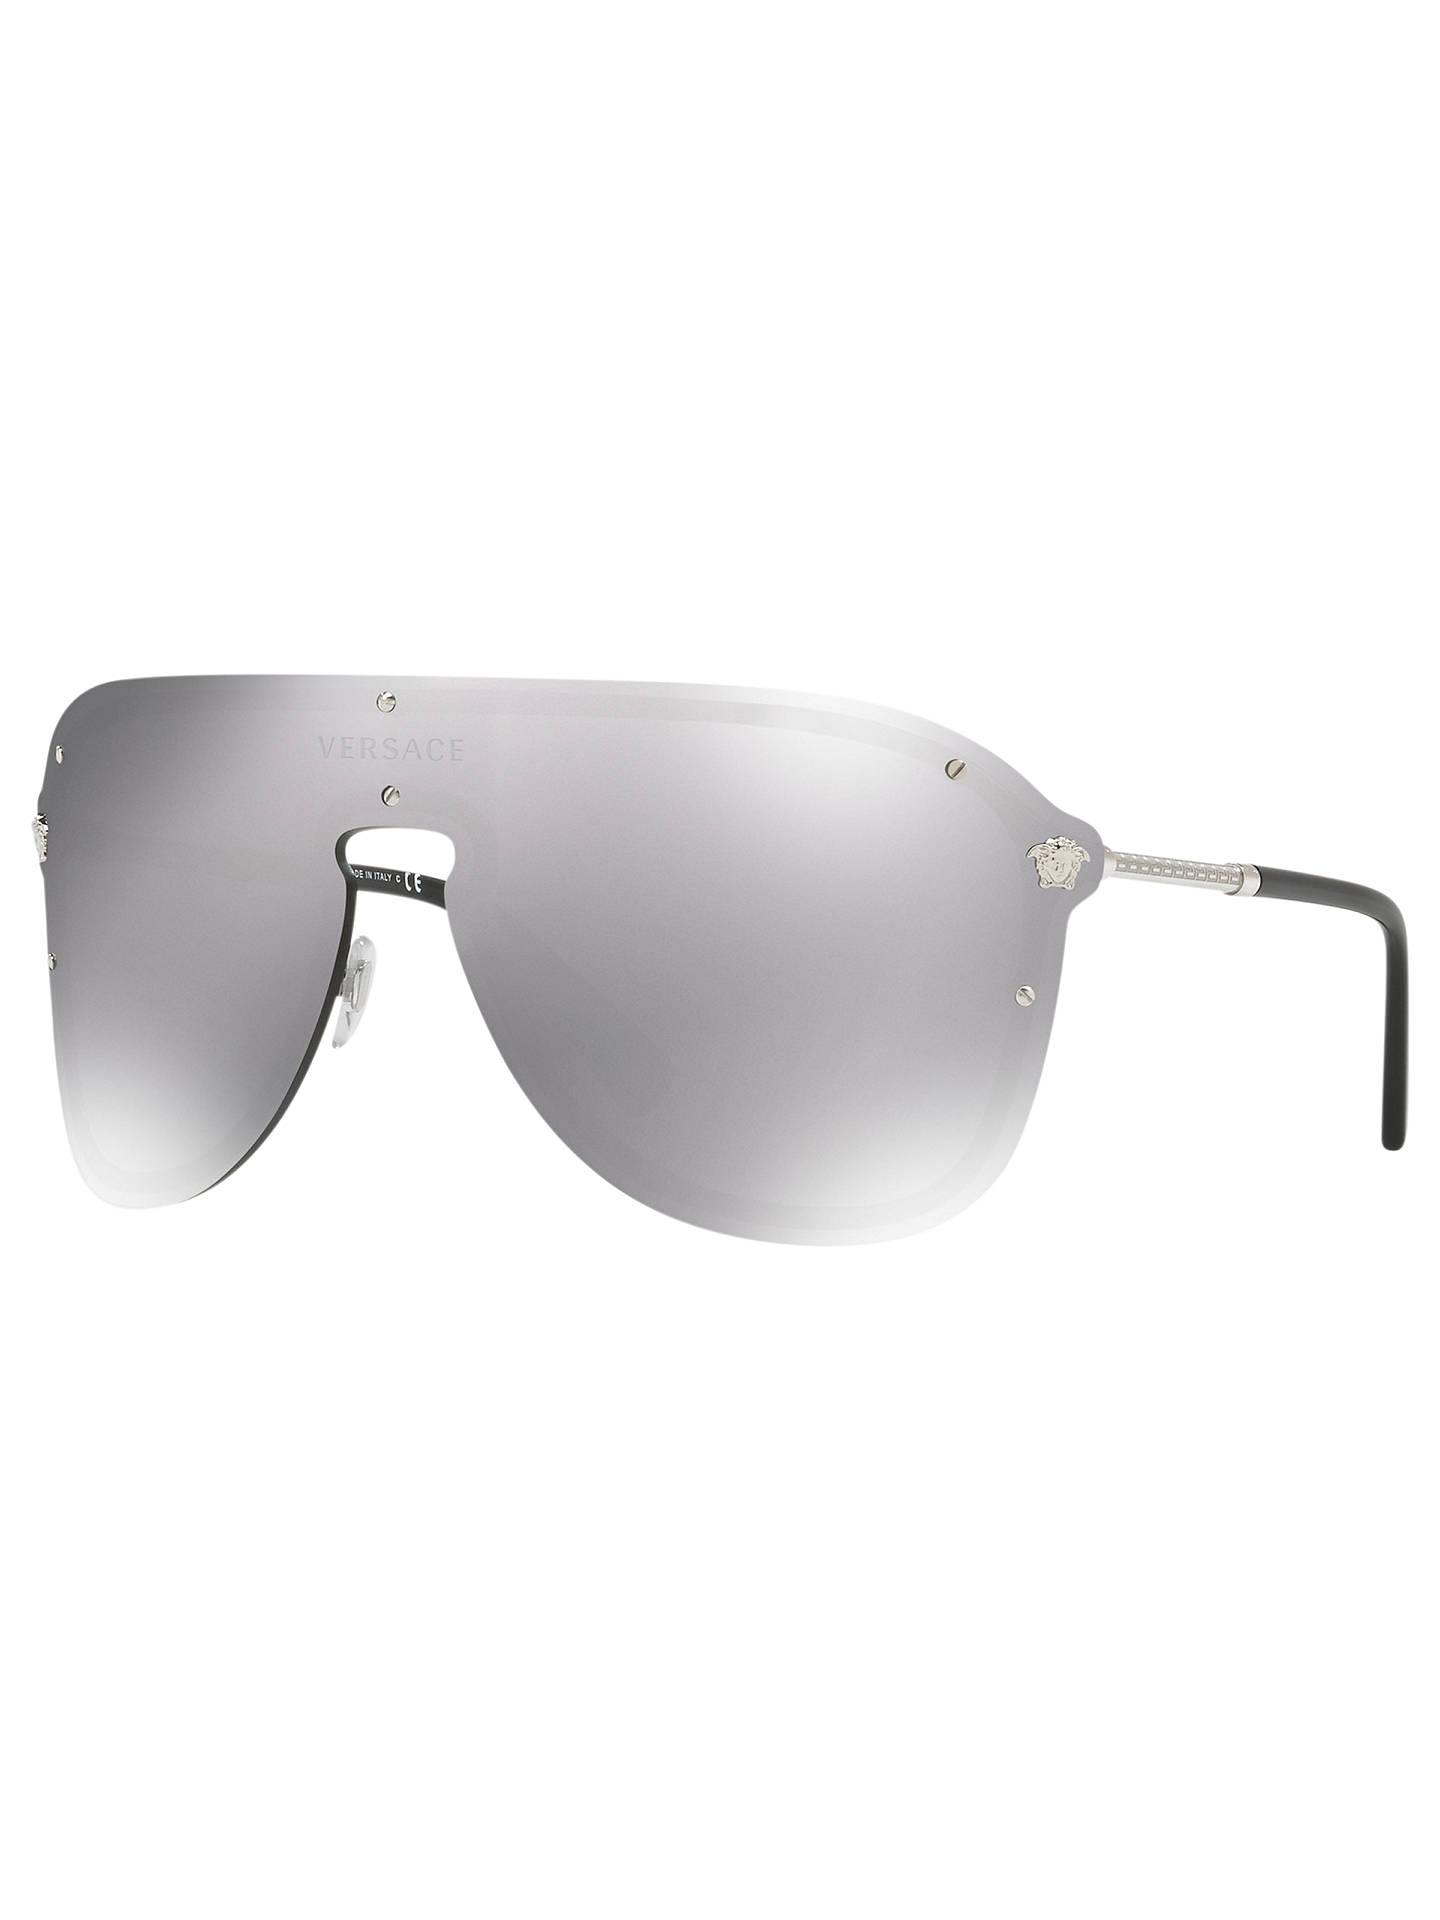 2a5b0d24694 Versace VE2180 Women s Aviator Sunglasses at John Lewis   Partners